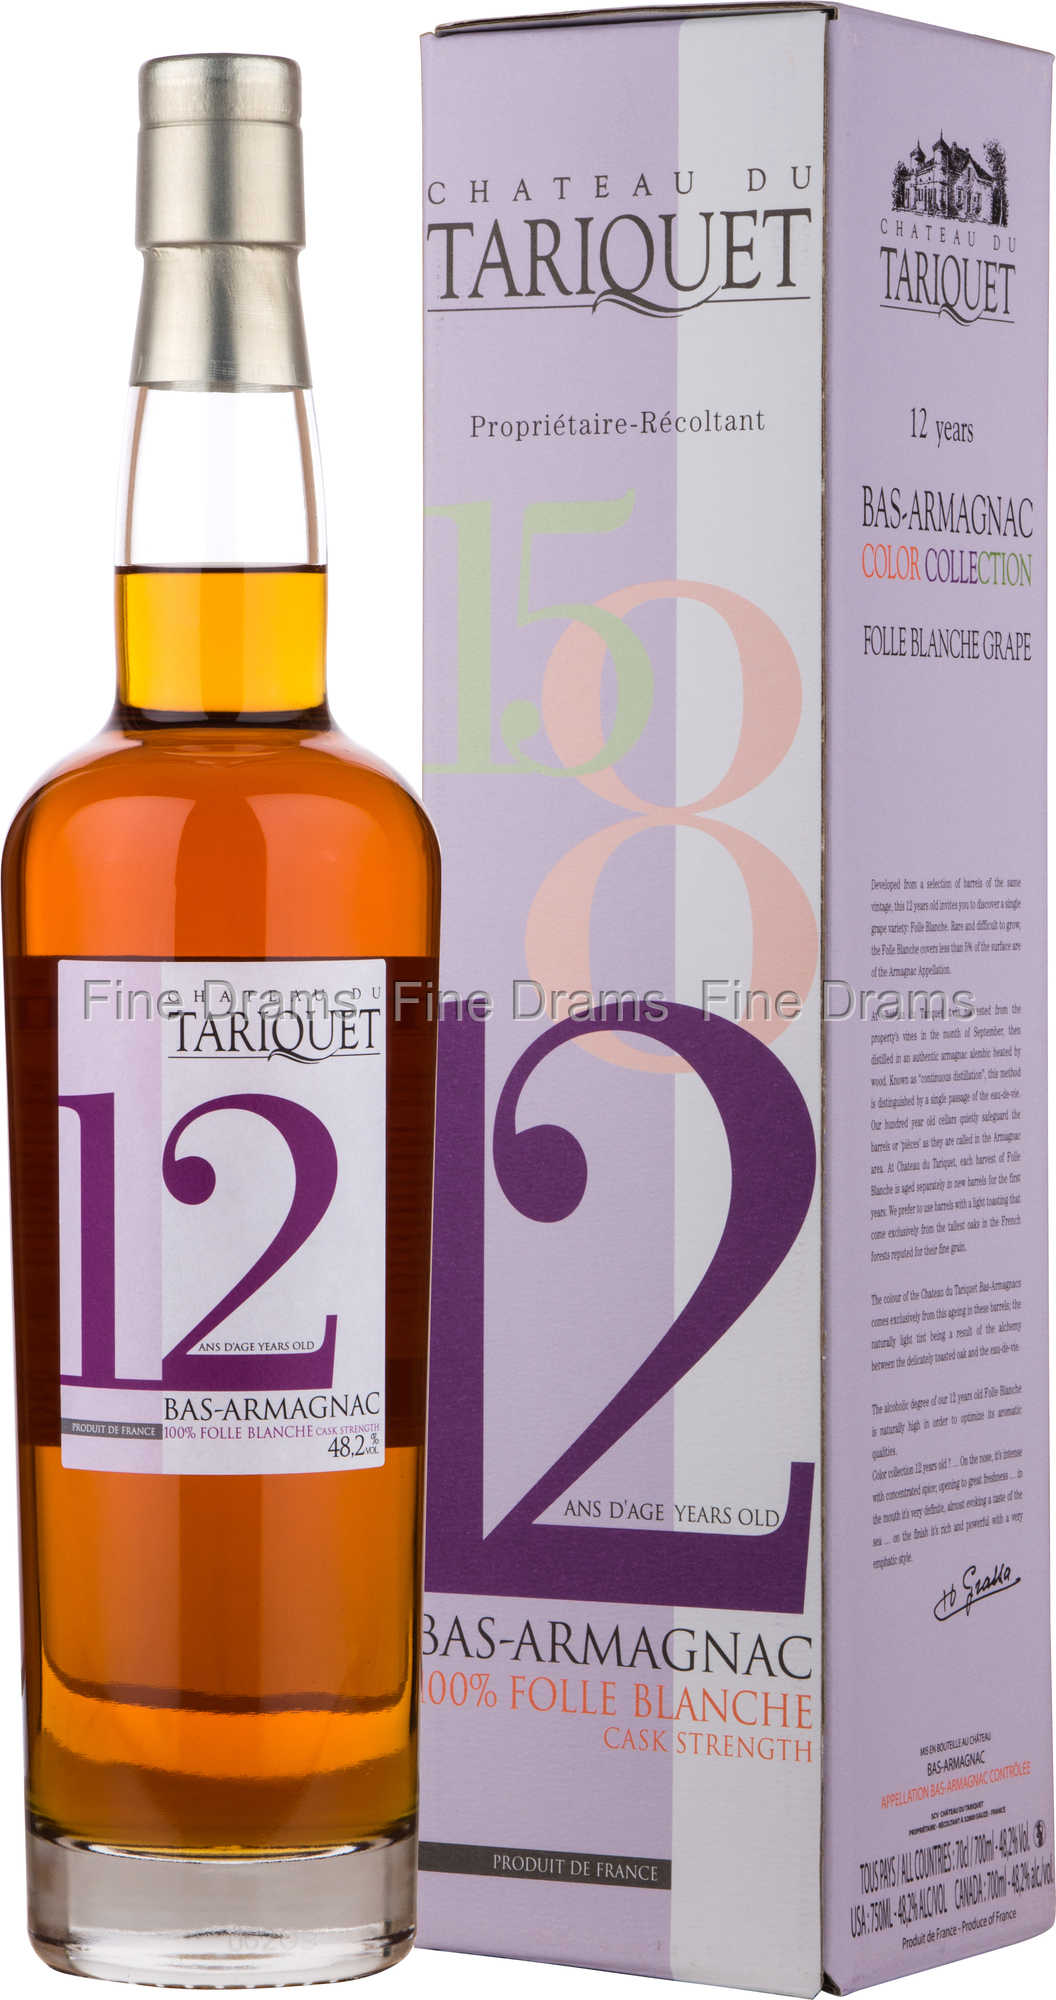 Chateau Du Tariquet 12 Year Old Cask Strength Armagnac